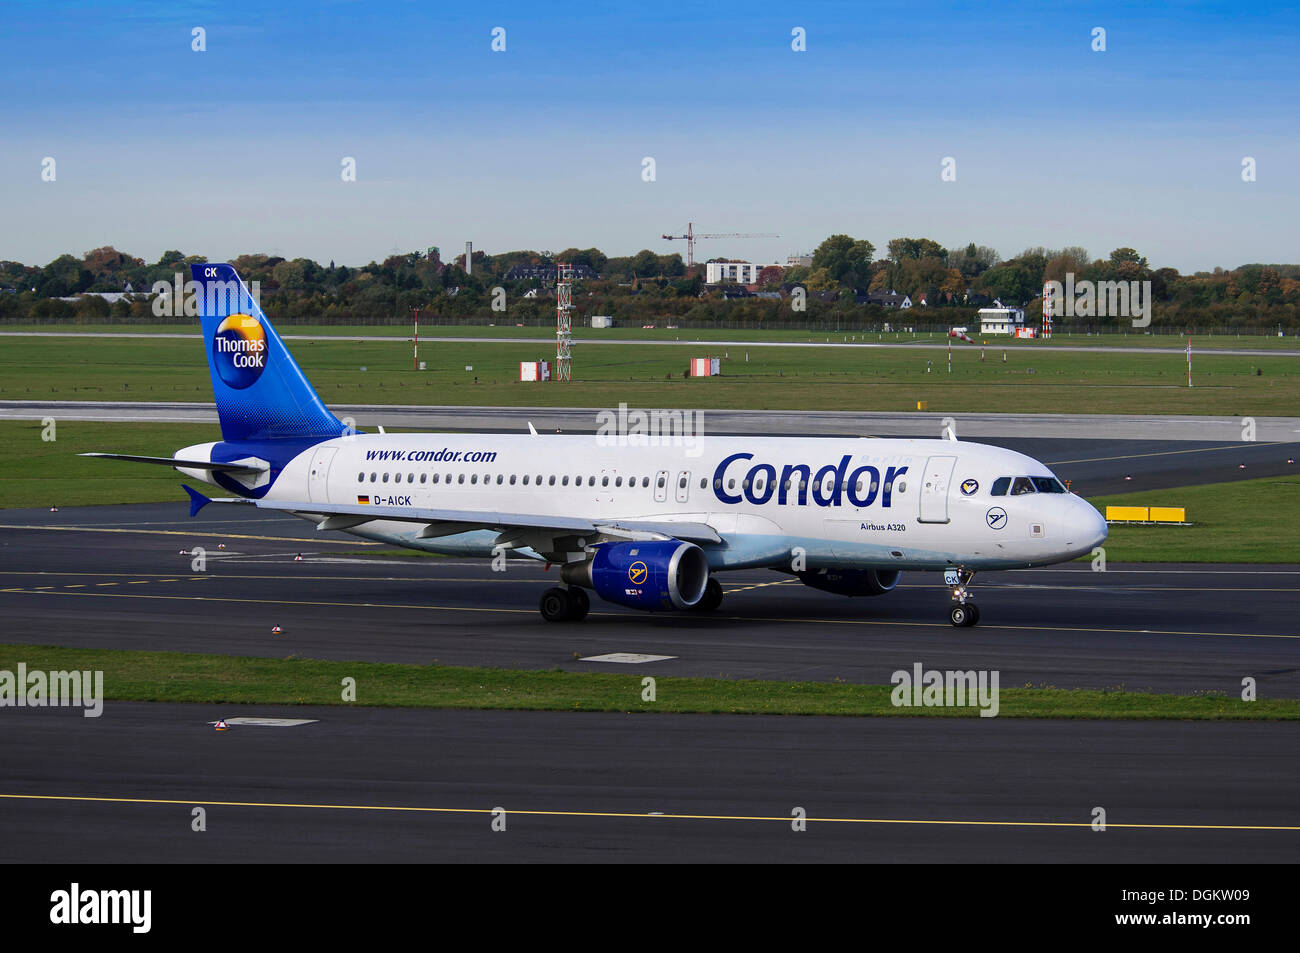 Condor Airbus A320, aircraft on the runway, Duesseldorf International Airport, North Rhine-Westphalia - Stock Image